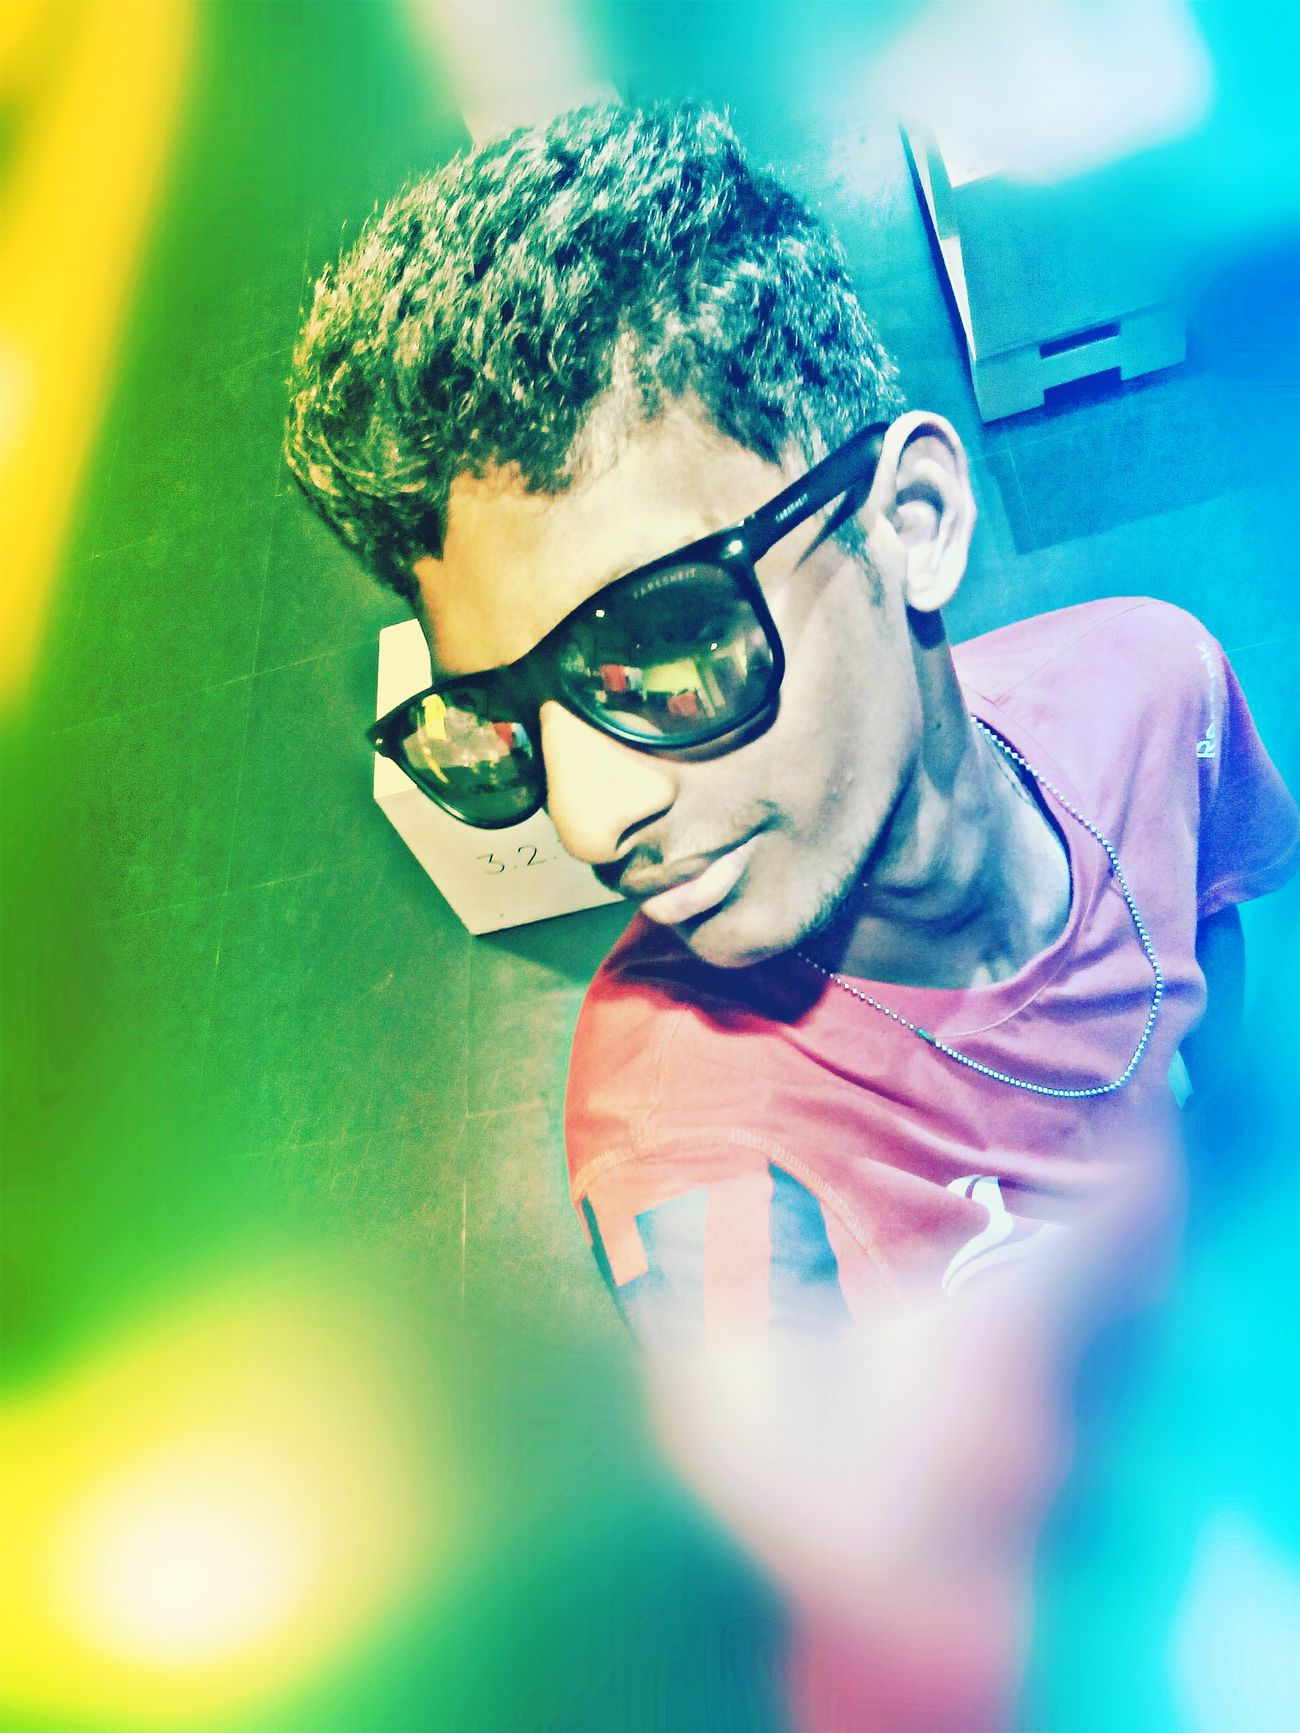 Its me Selfie ✌ Pulla Give Me A Kiss ... Now Looking Awesome Sunglasses :) My Photography. ❤ Making A Difference Edition Photography Fashion Hair